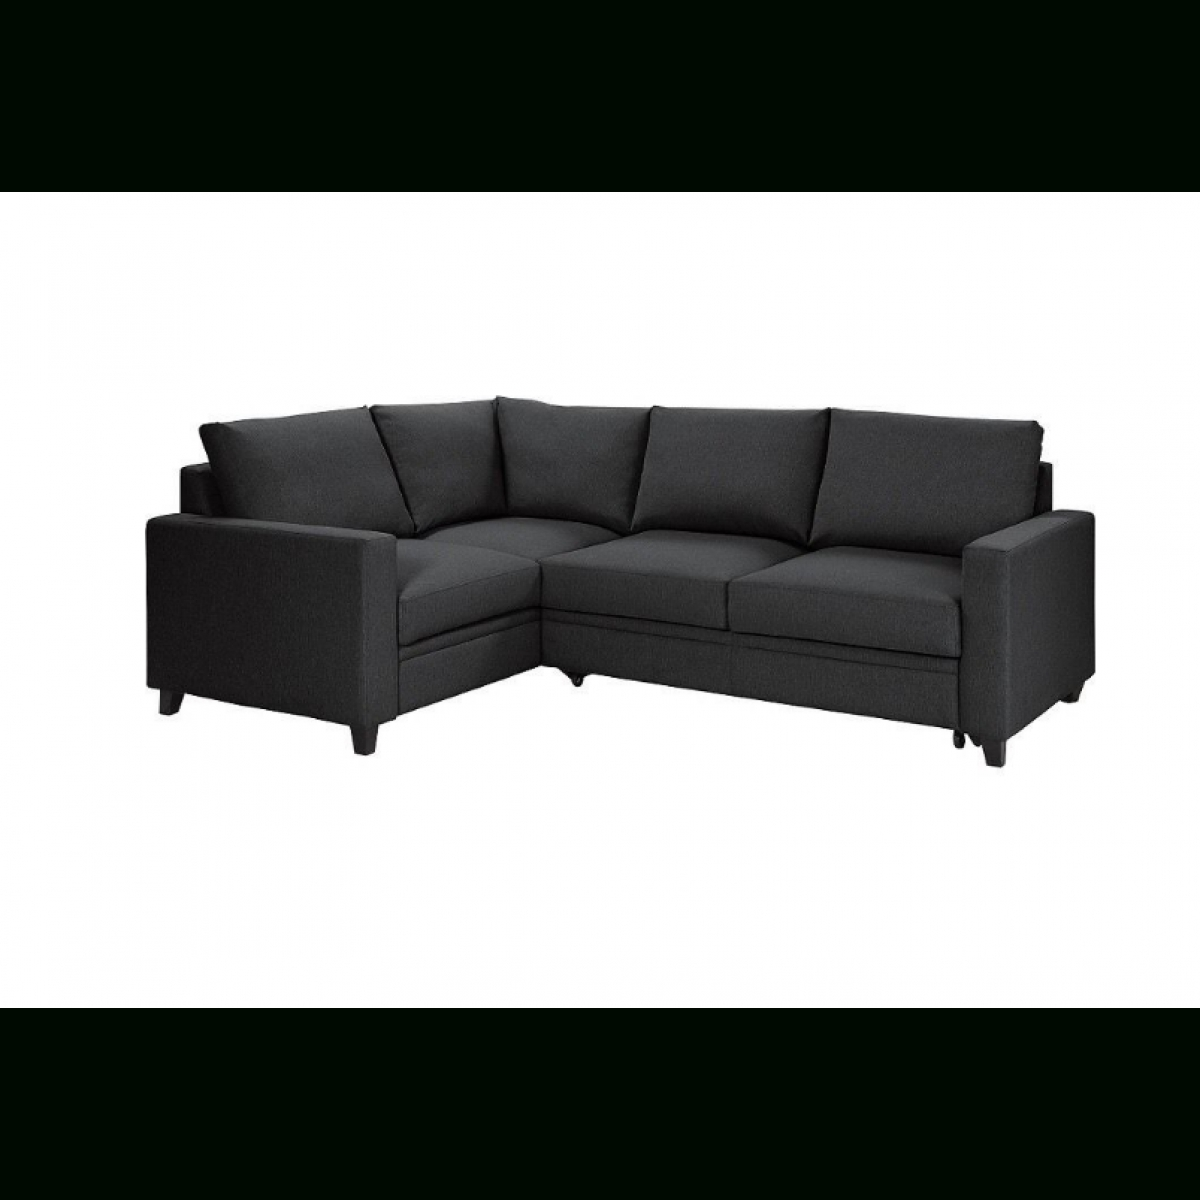 Hygena Seattle Fabric Left Hand Corner Sofa Bed – Charcoal Inside Corner Sofa Beds (Image 14 of 20)